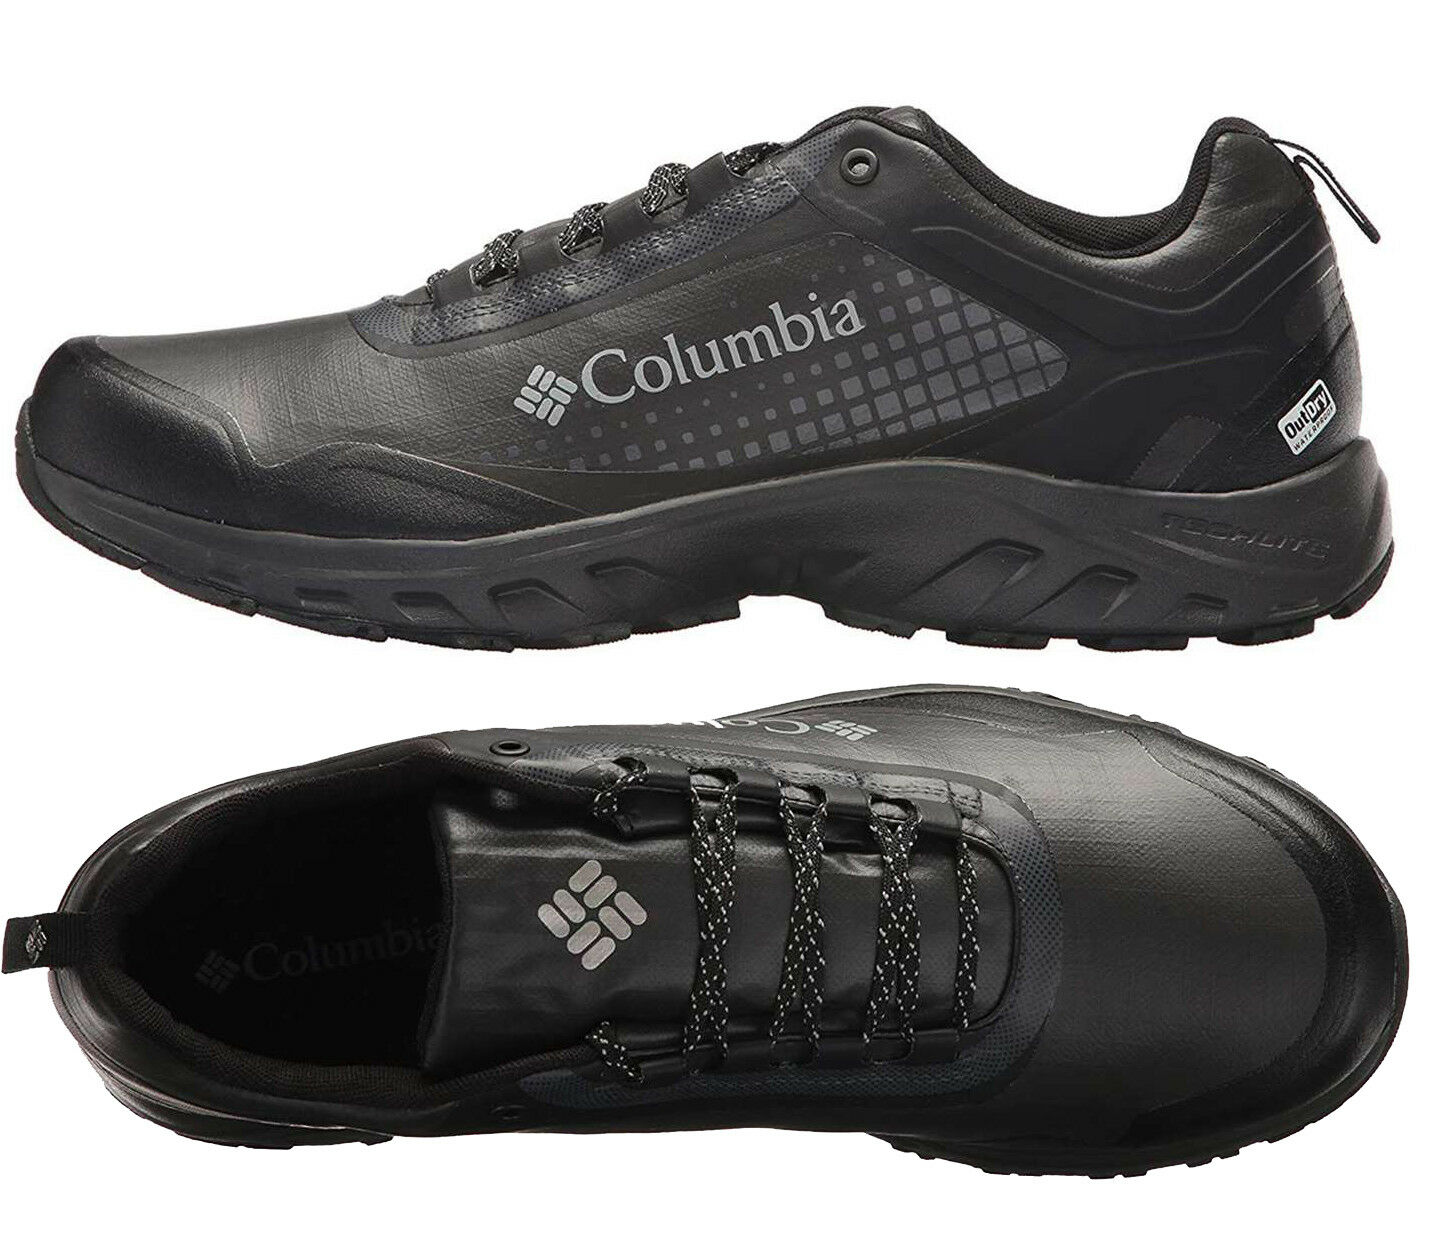 Mens Columbia IRRIGON TRAIN OUTDRY XTRM Black Hiking shoes NEW